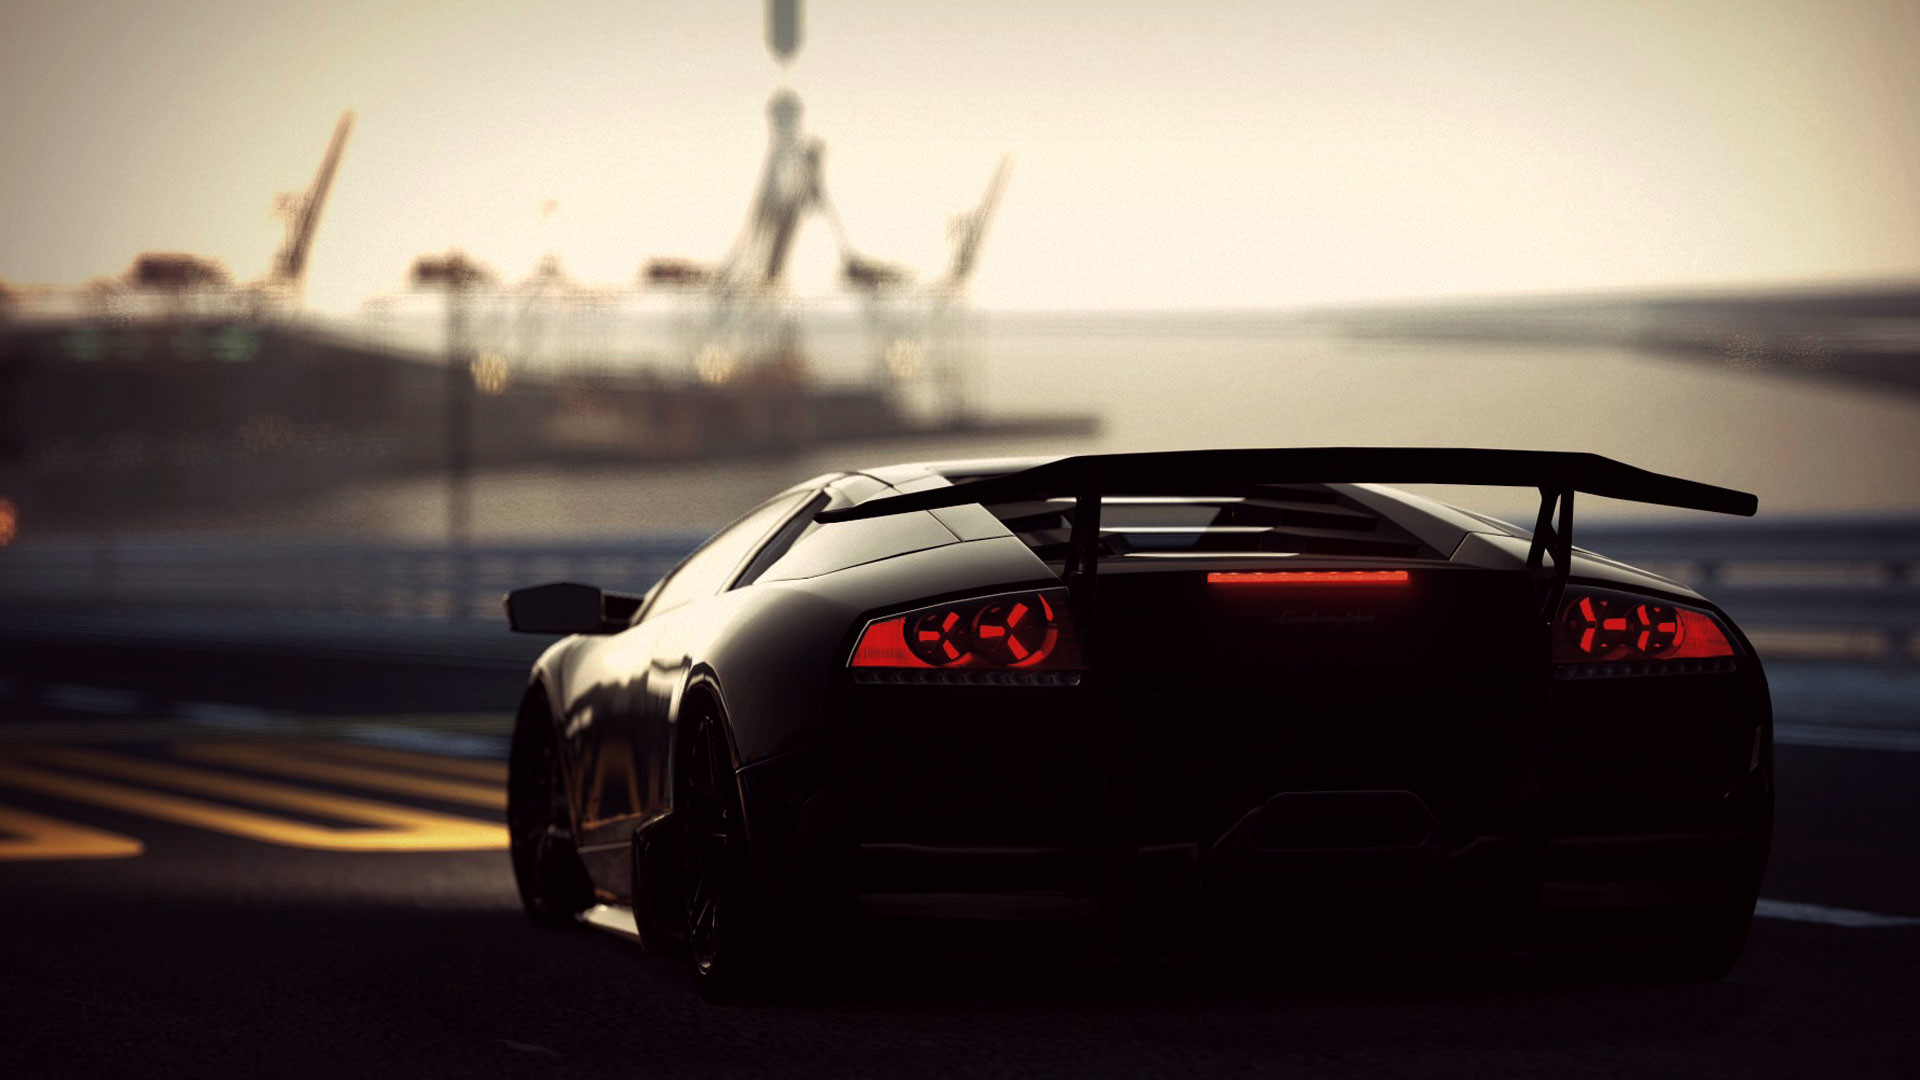 1920x1080 Awesome Lamborghini Pictures 28162